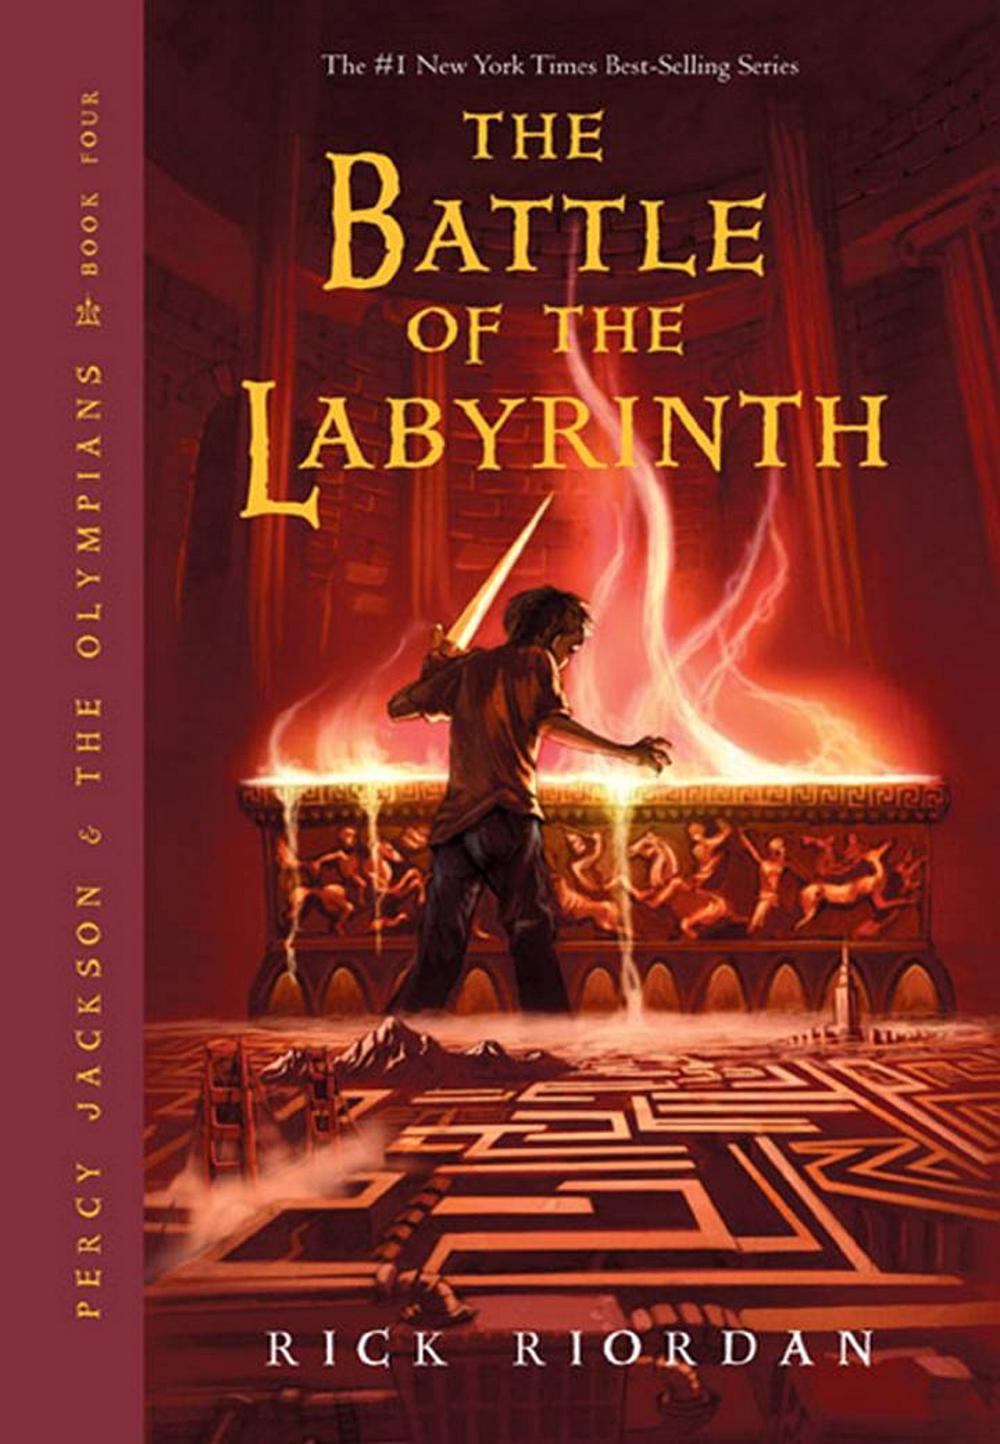 Percy Jackson Battle of the Labyrinth Original Cover